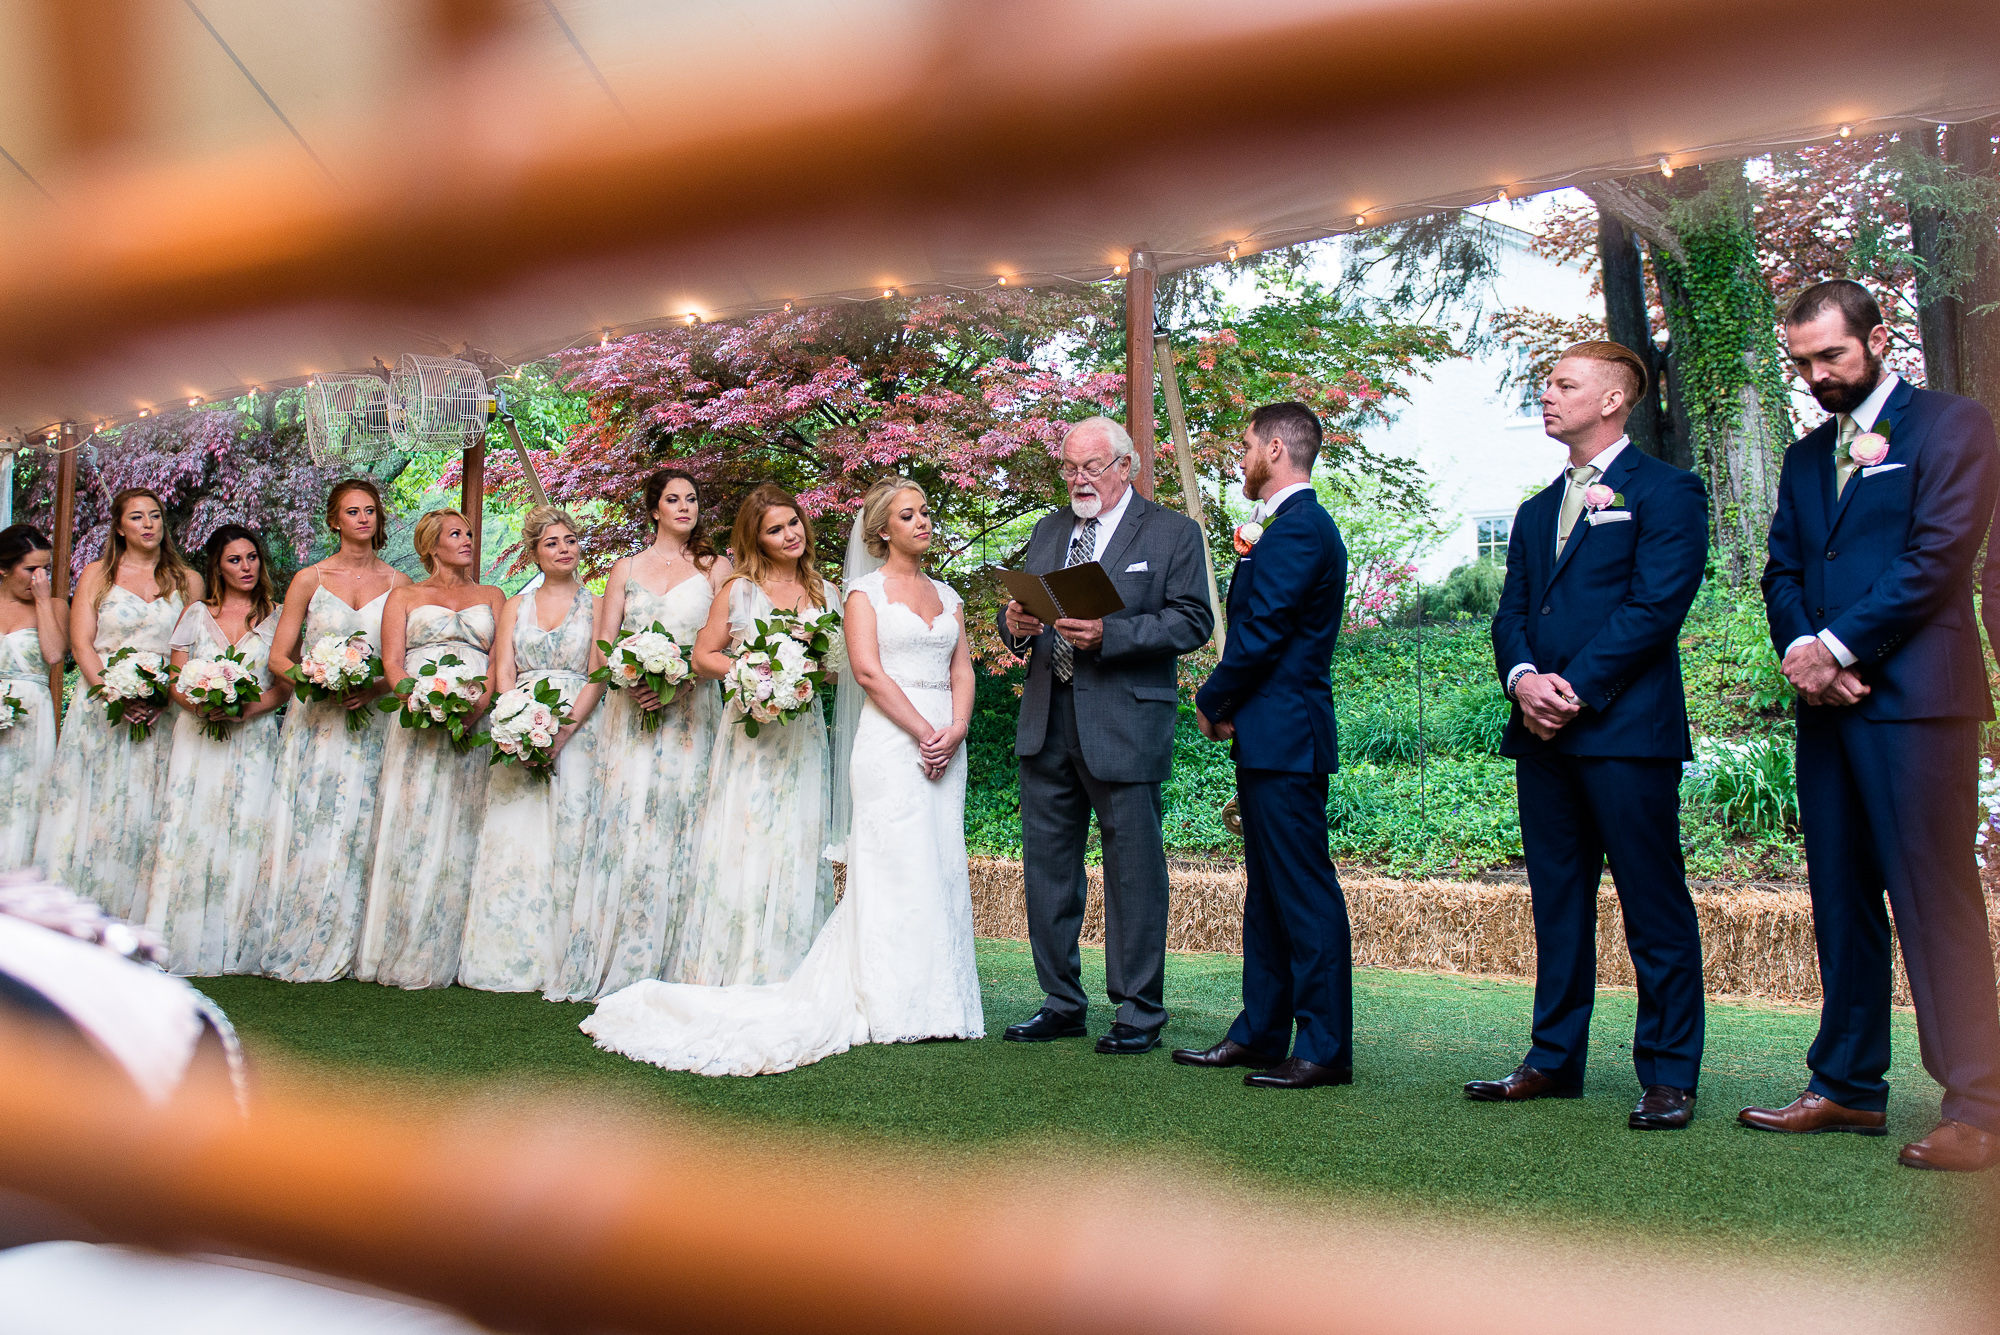 A tented wedding ceremony at Keswick Vineyards in Charlottesville, Virginia